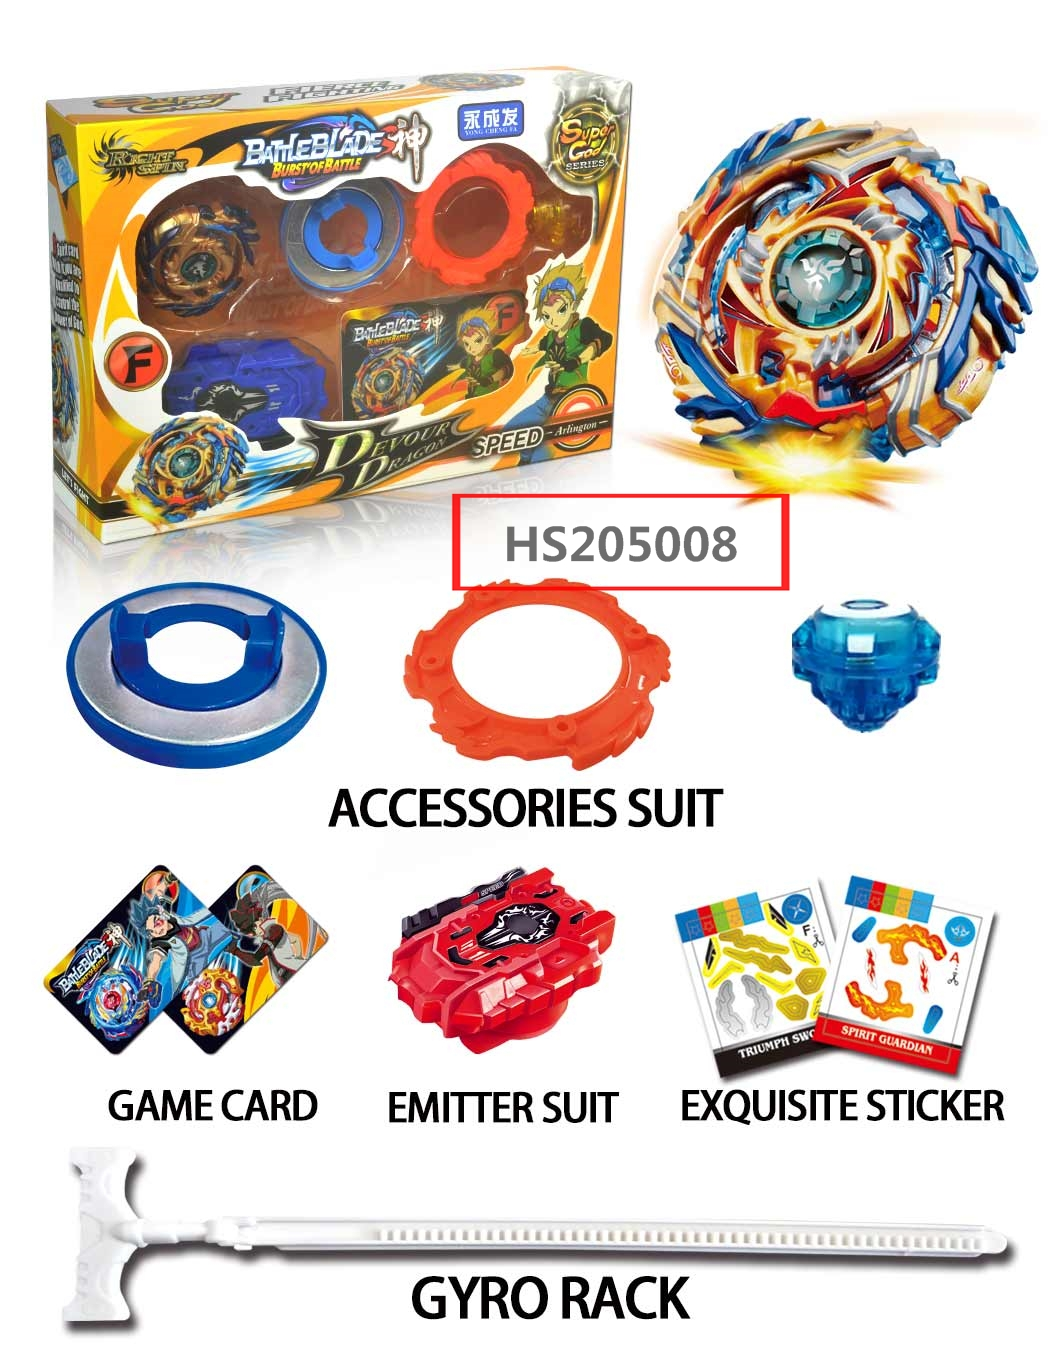 HS205008, Huwsin Toys, Metal attack ring Spinning top toy set for kids